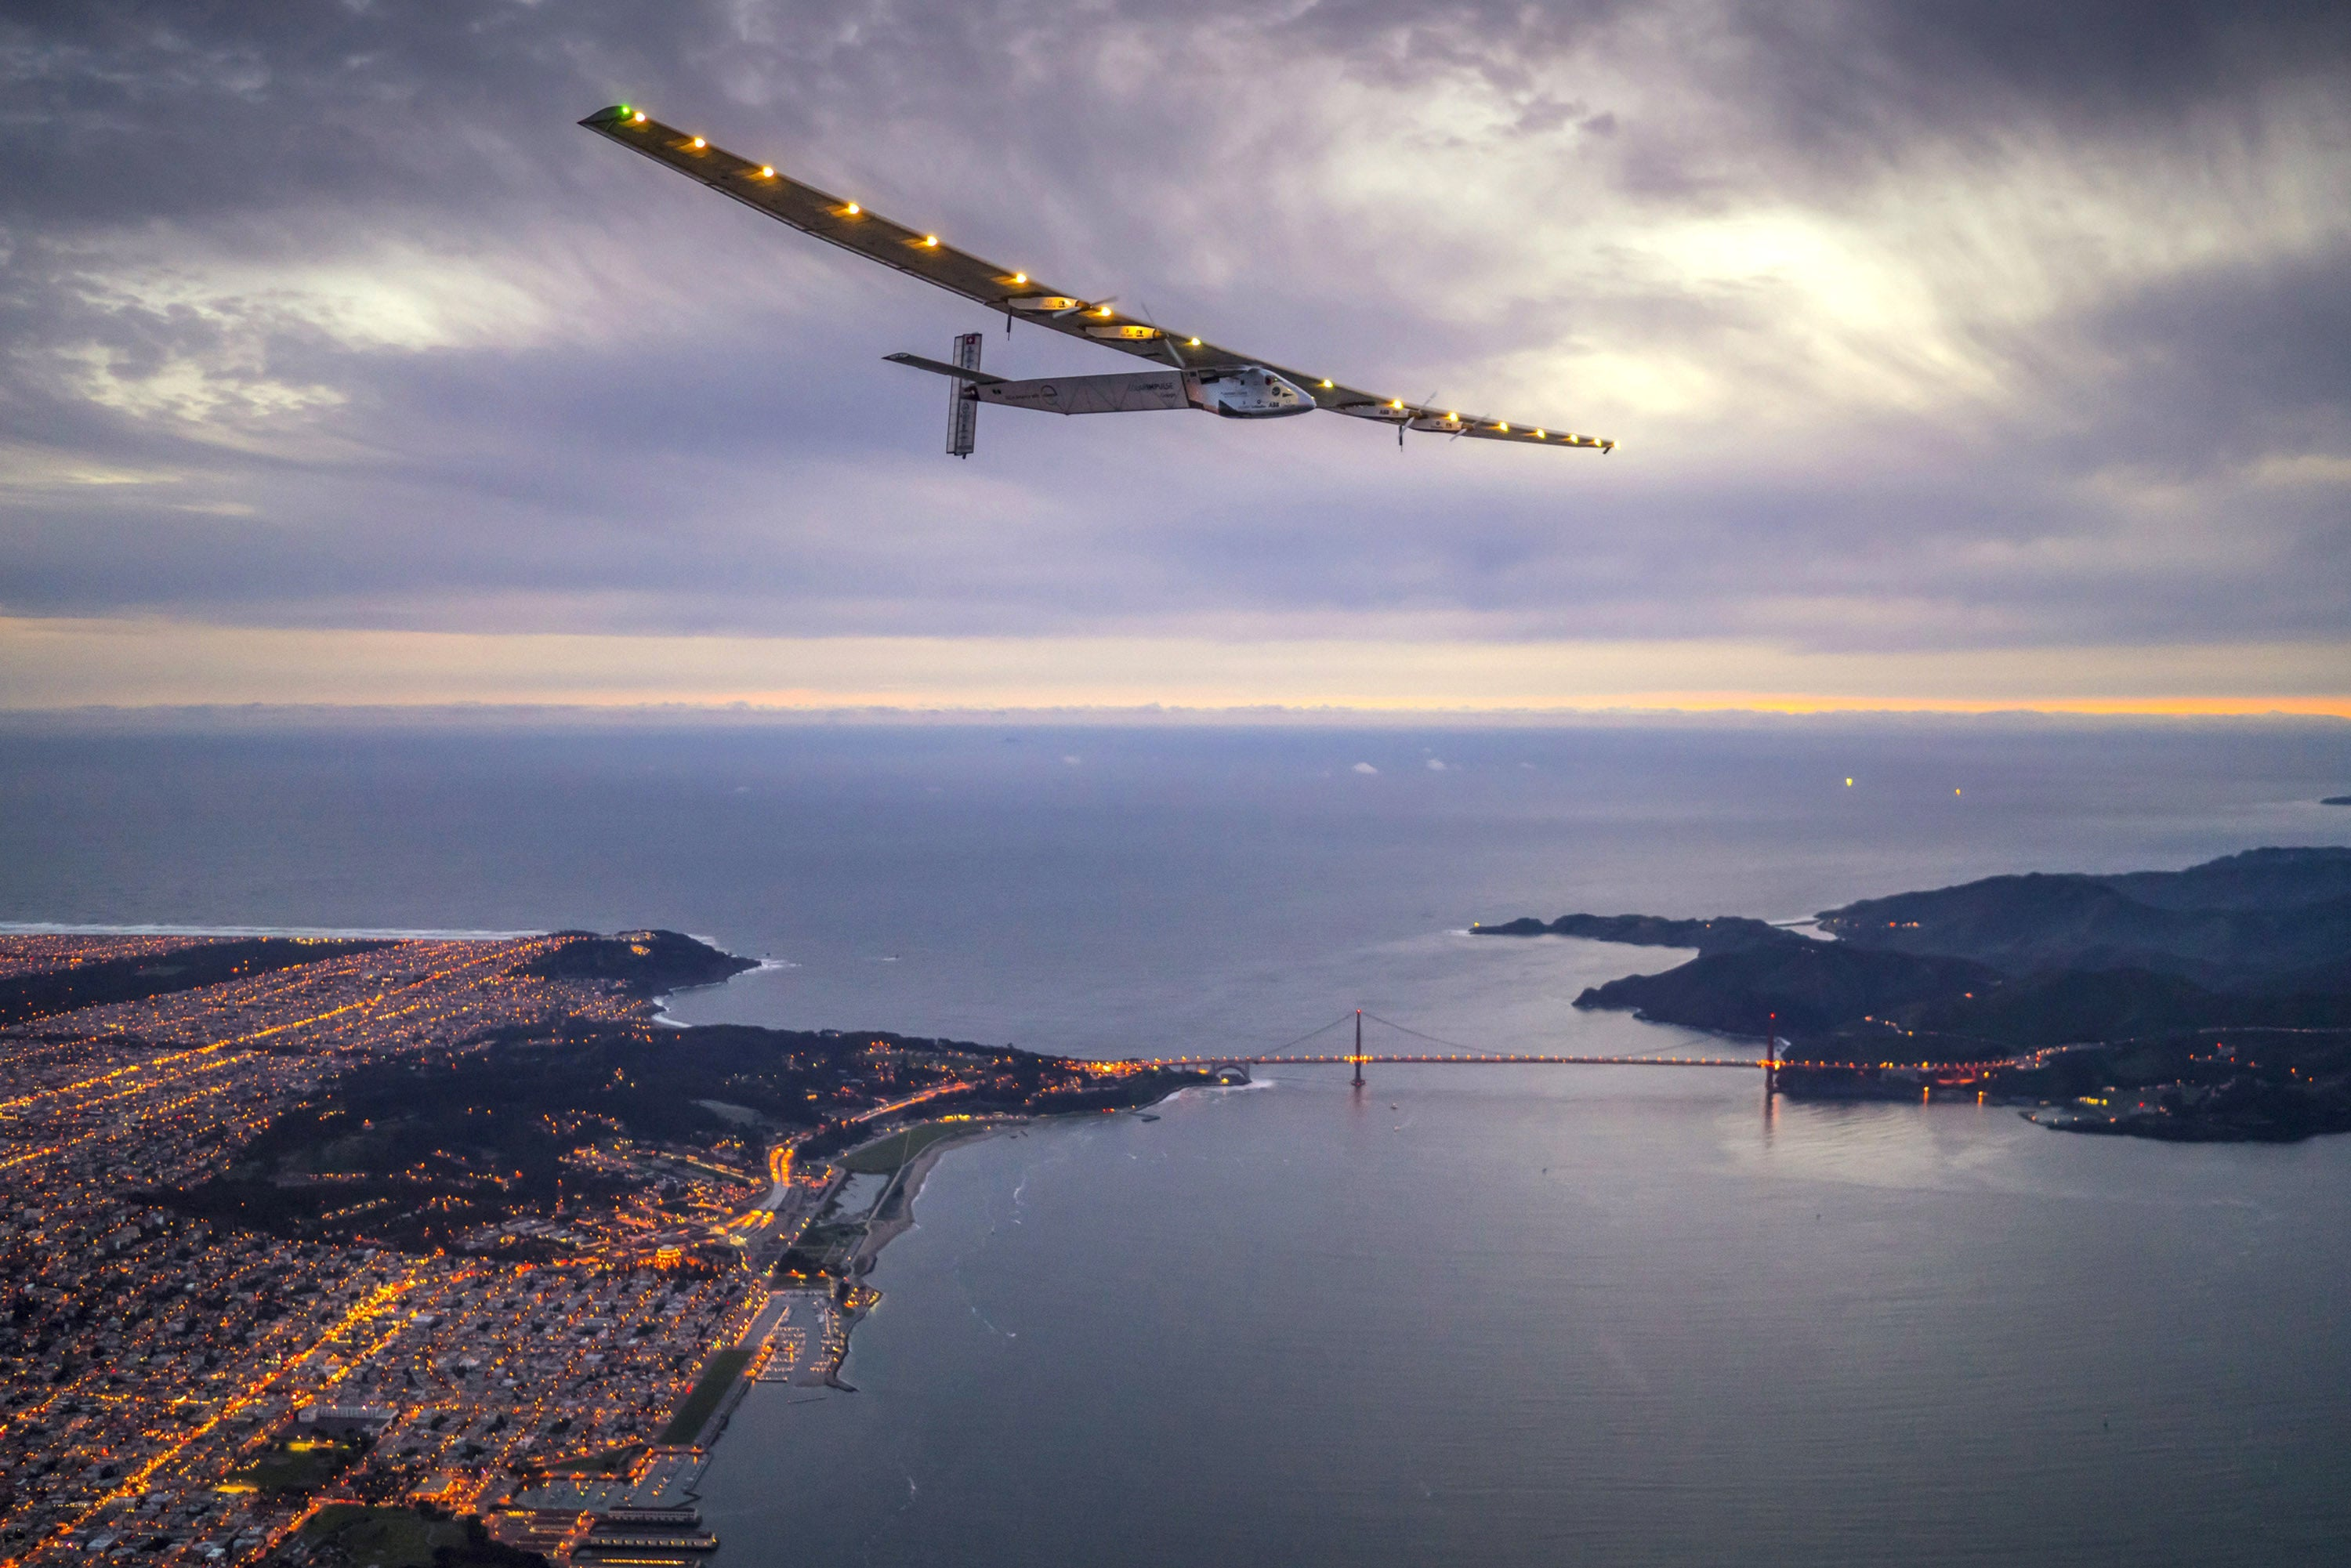 Solar Impulse 2 Successfully Landed in California After 62 Hours in the Air